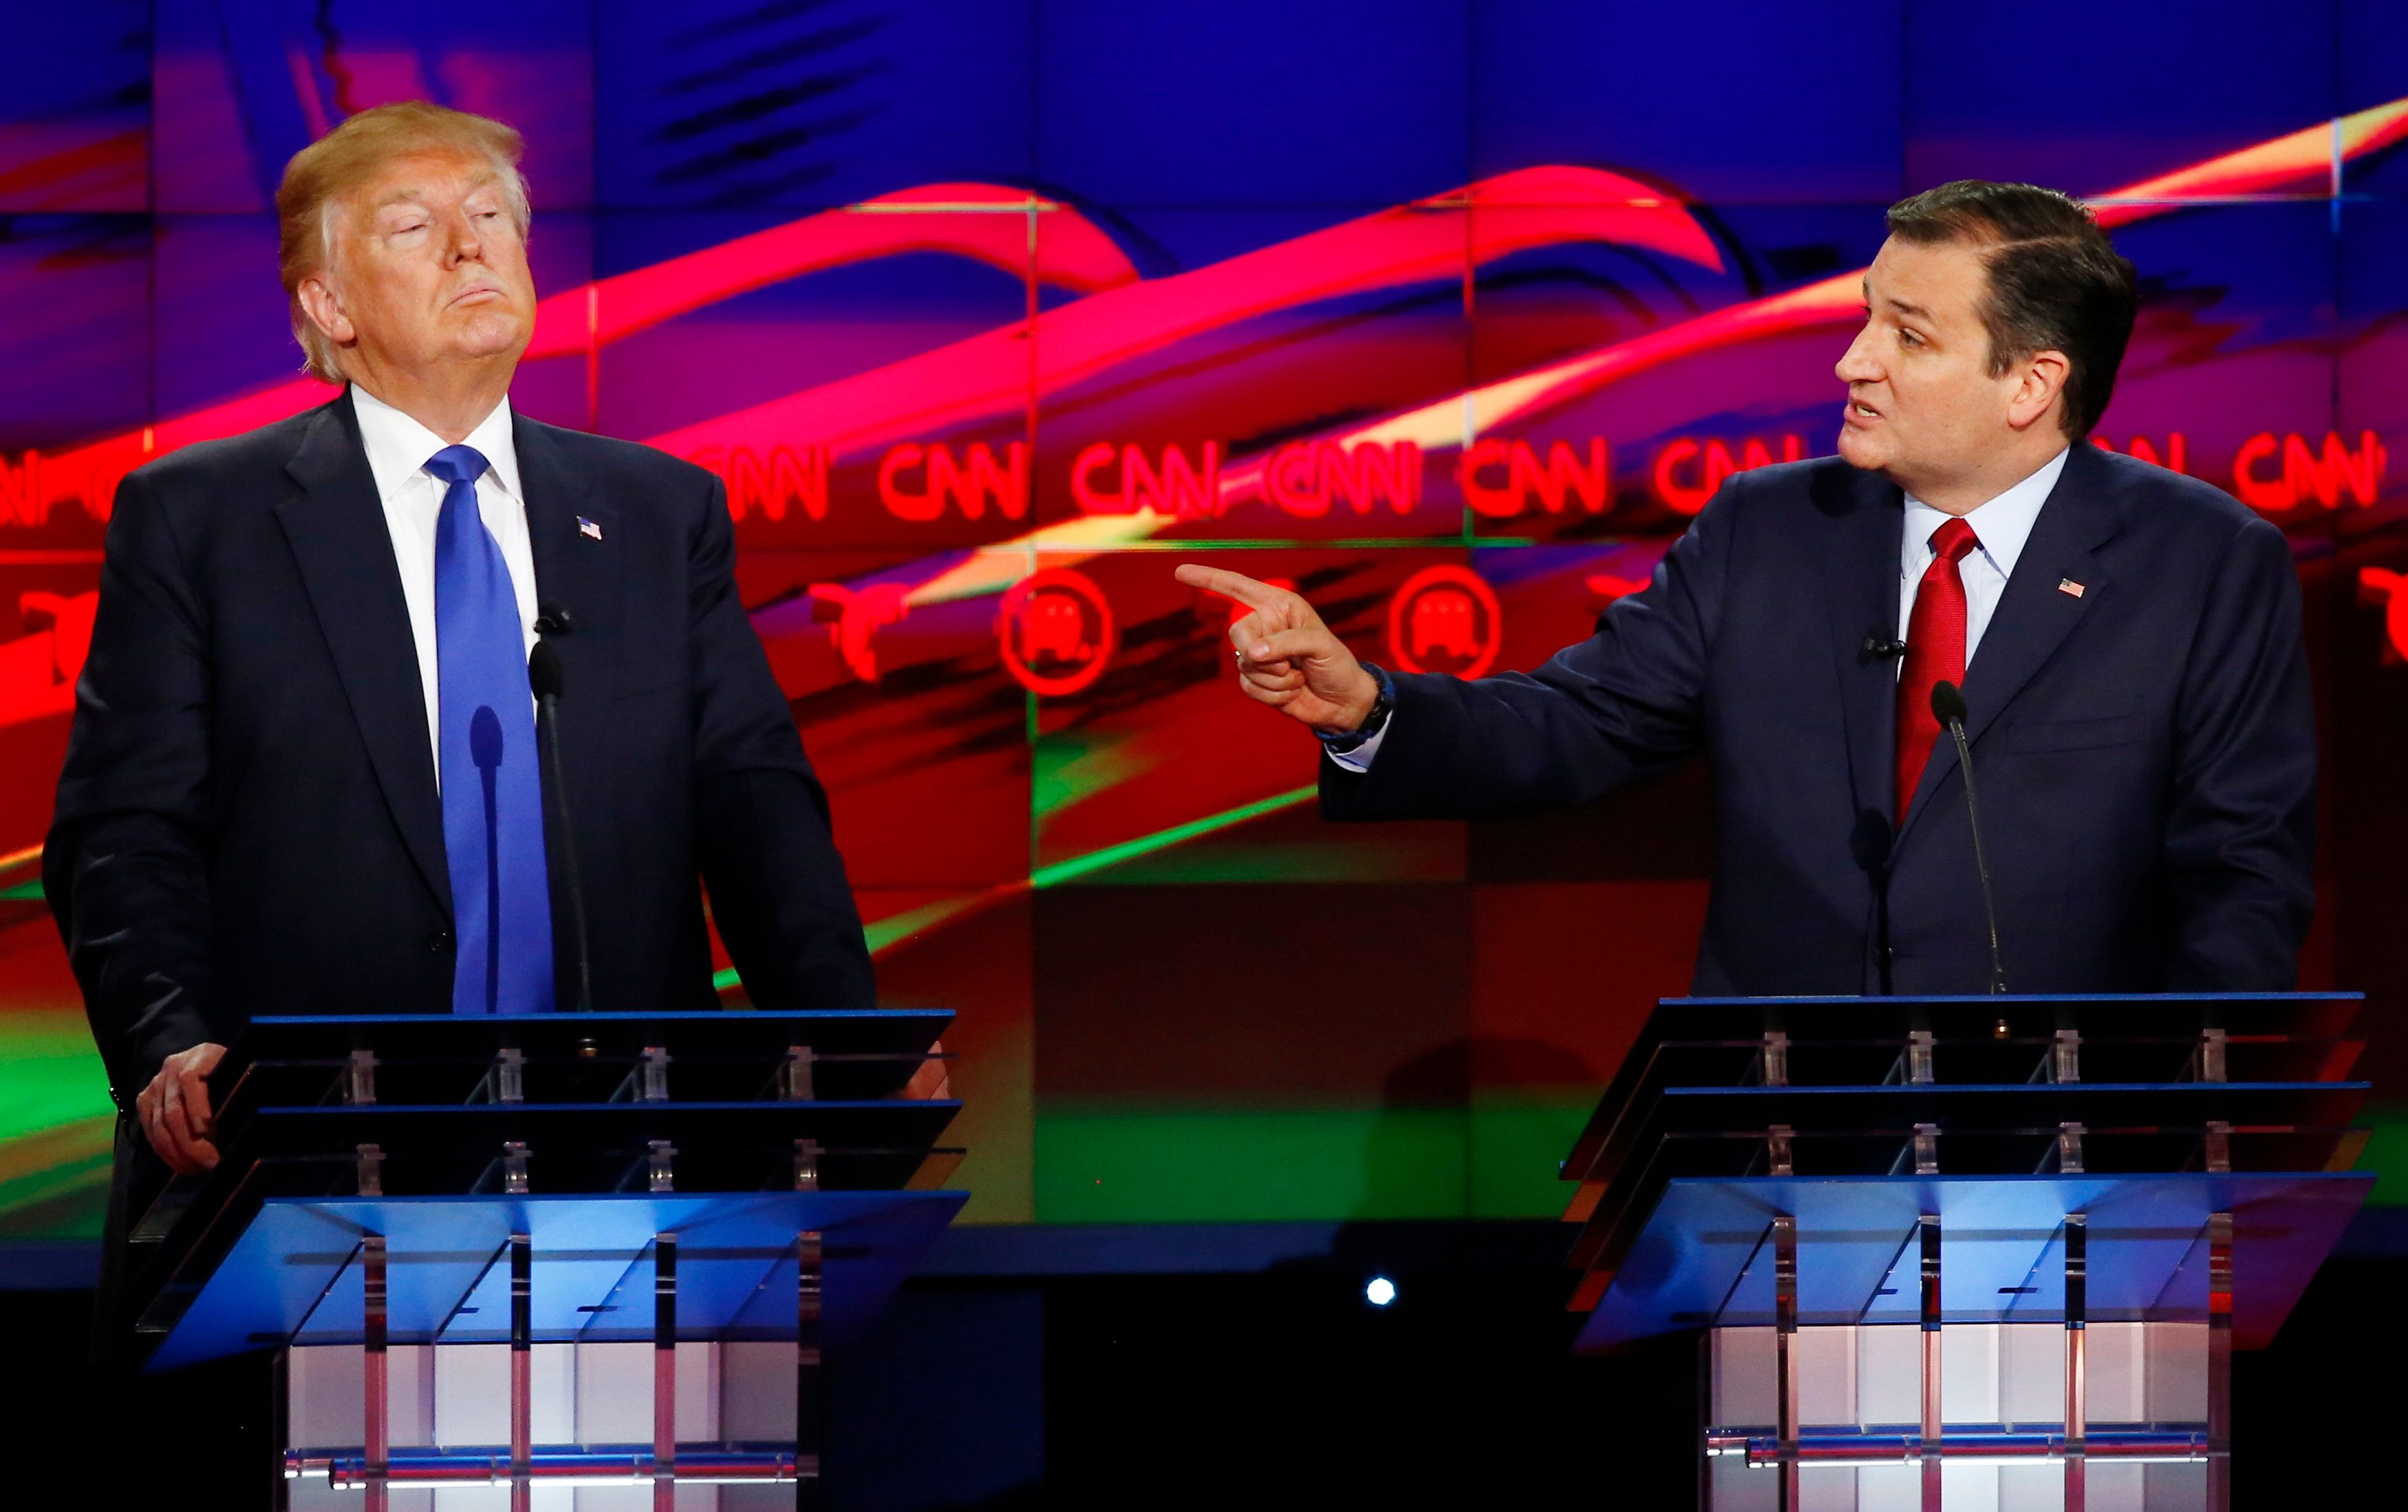 Cruz Writes Glowing Profile Of Trump, Who Repeatedly Insulted Him And His Wife